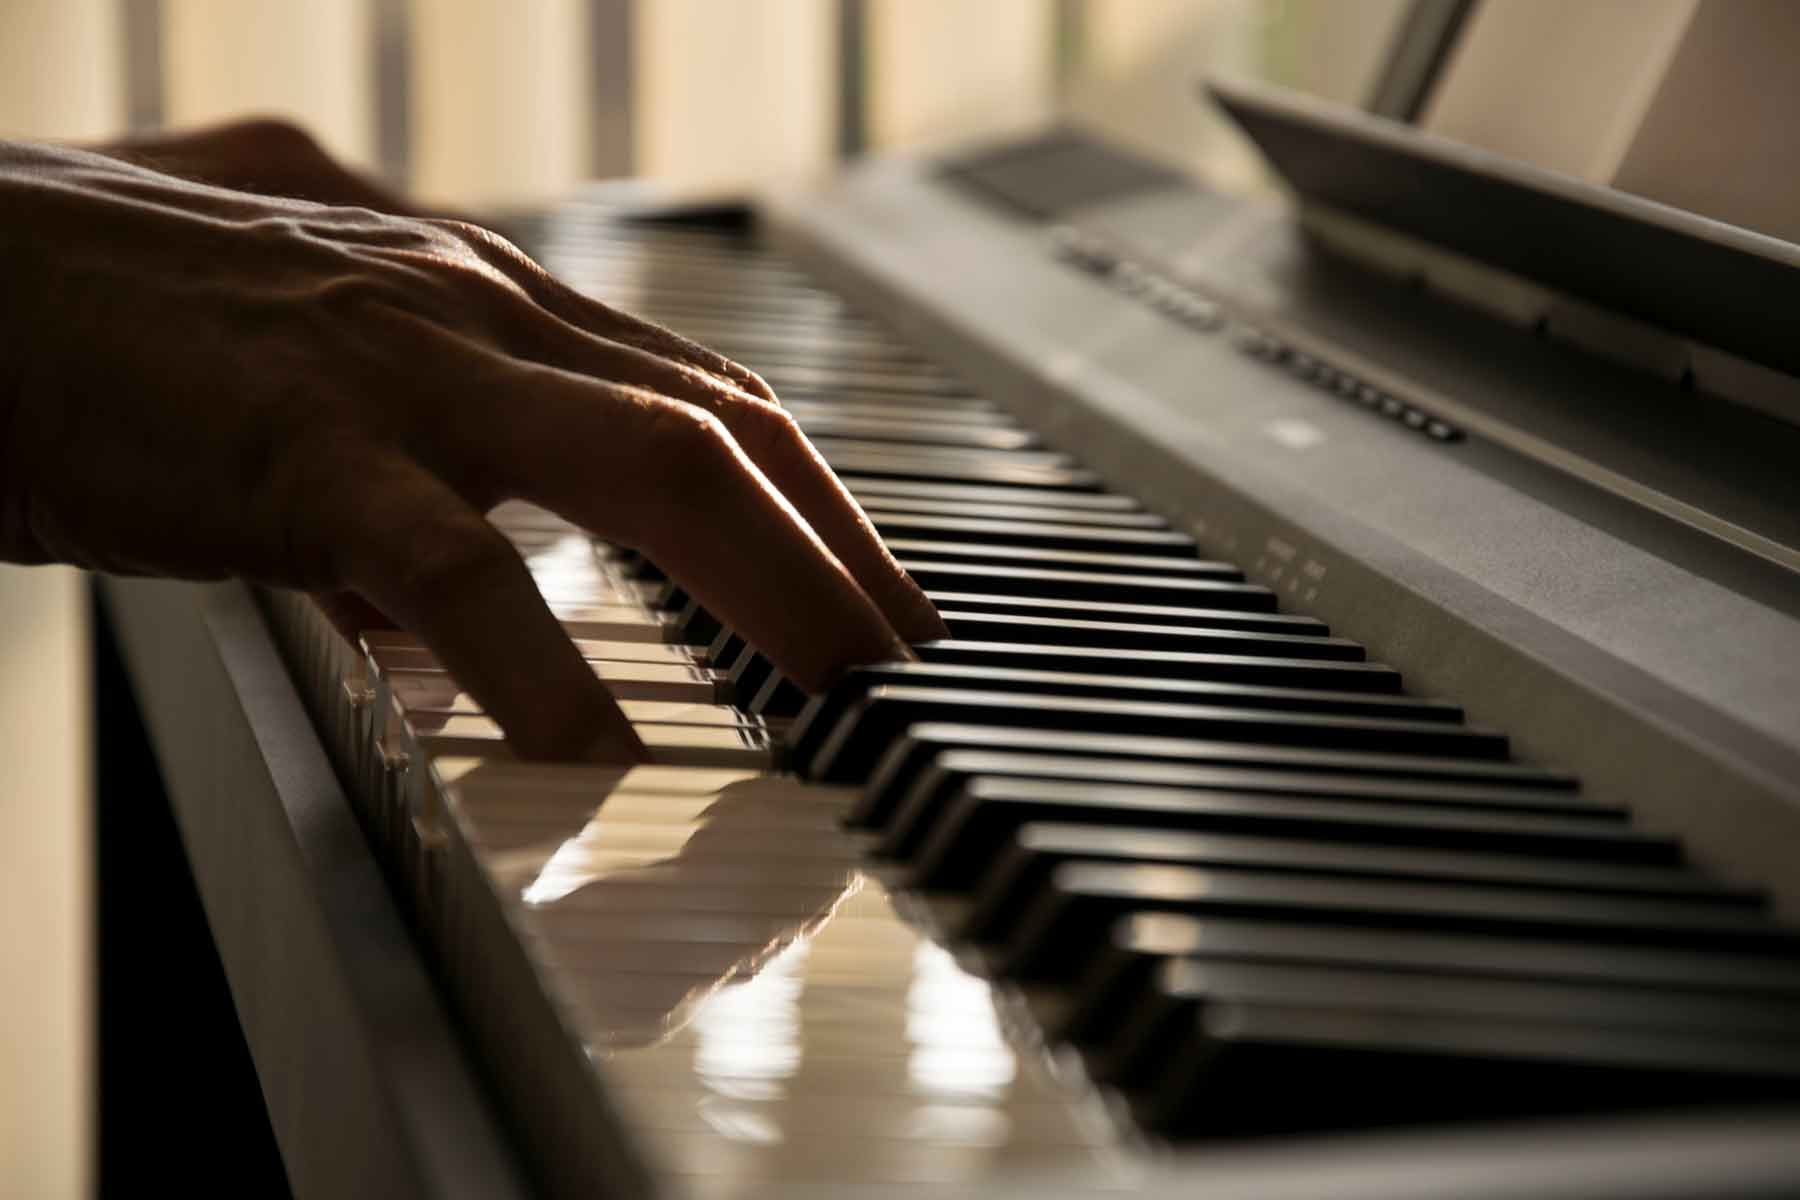 Why The Piano is so popular